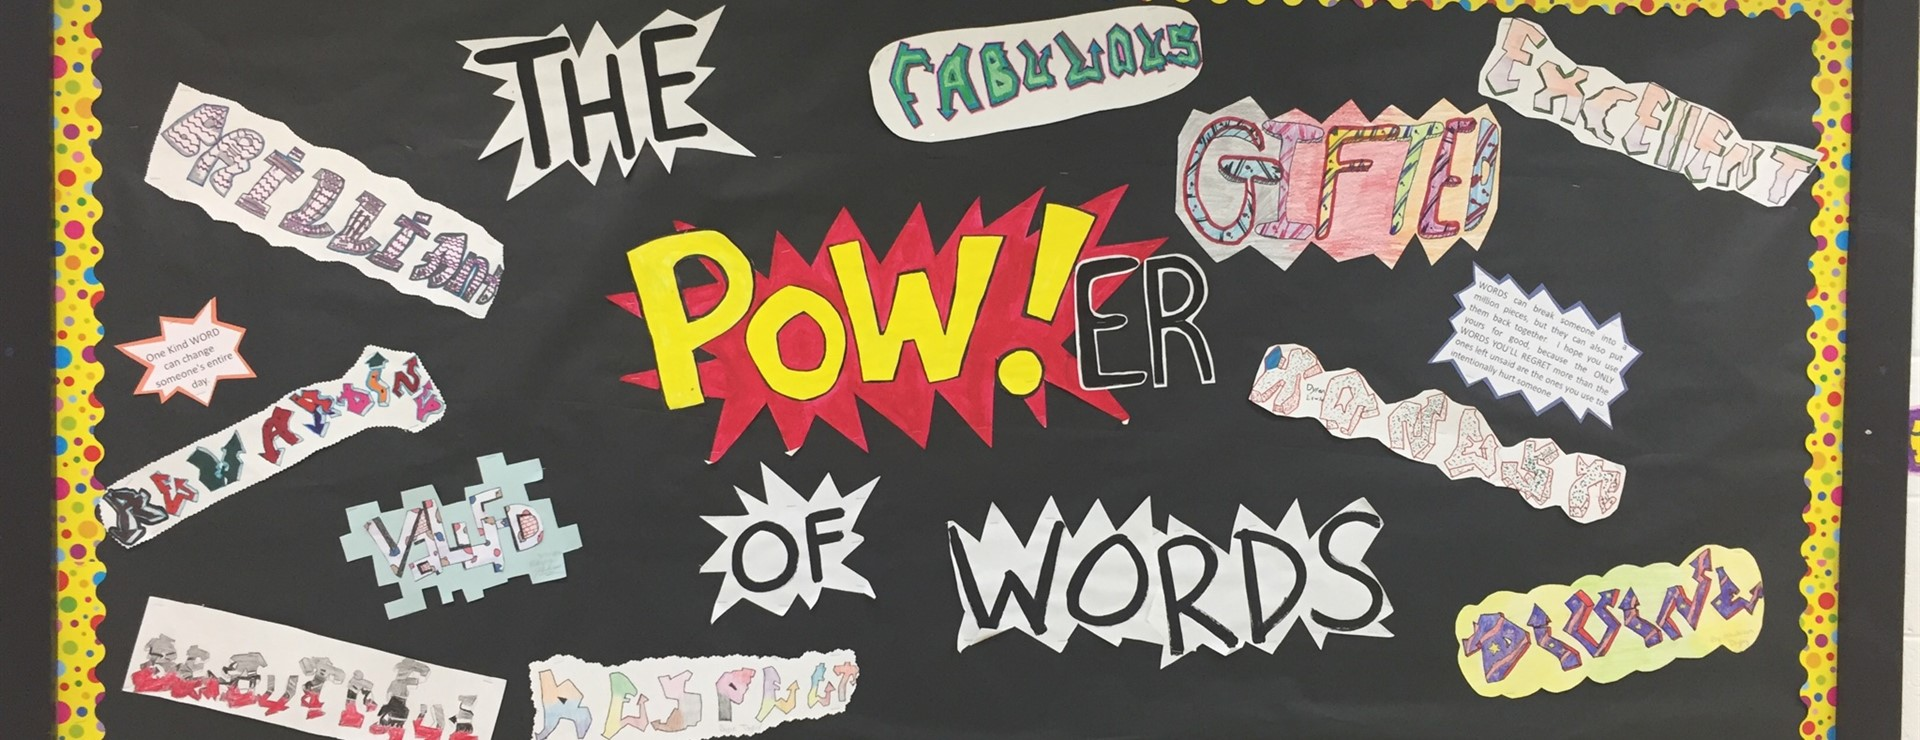 Mrs. Leigh Ann Wells' class showing the power of Positive Words!